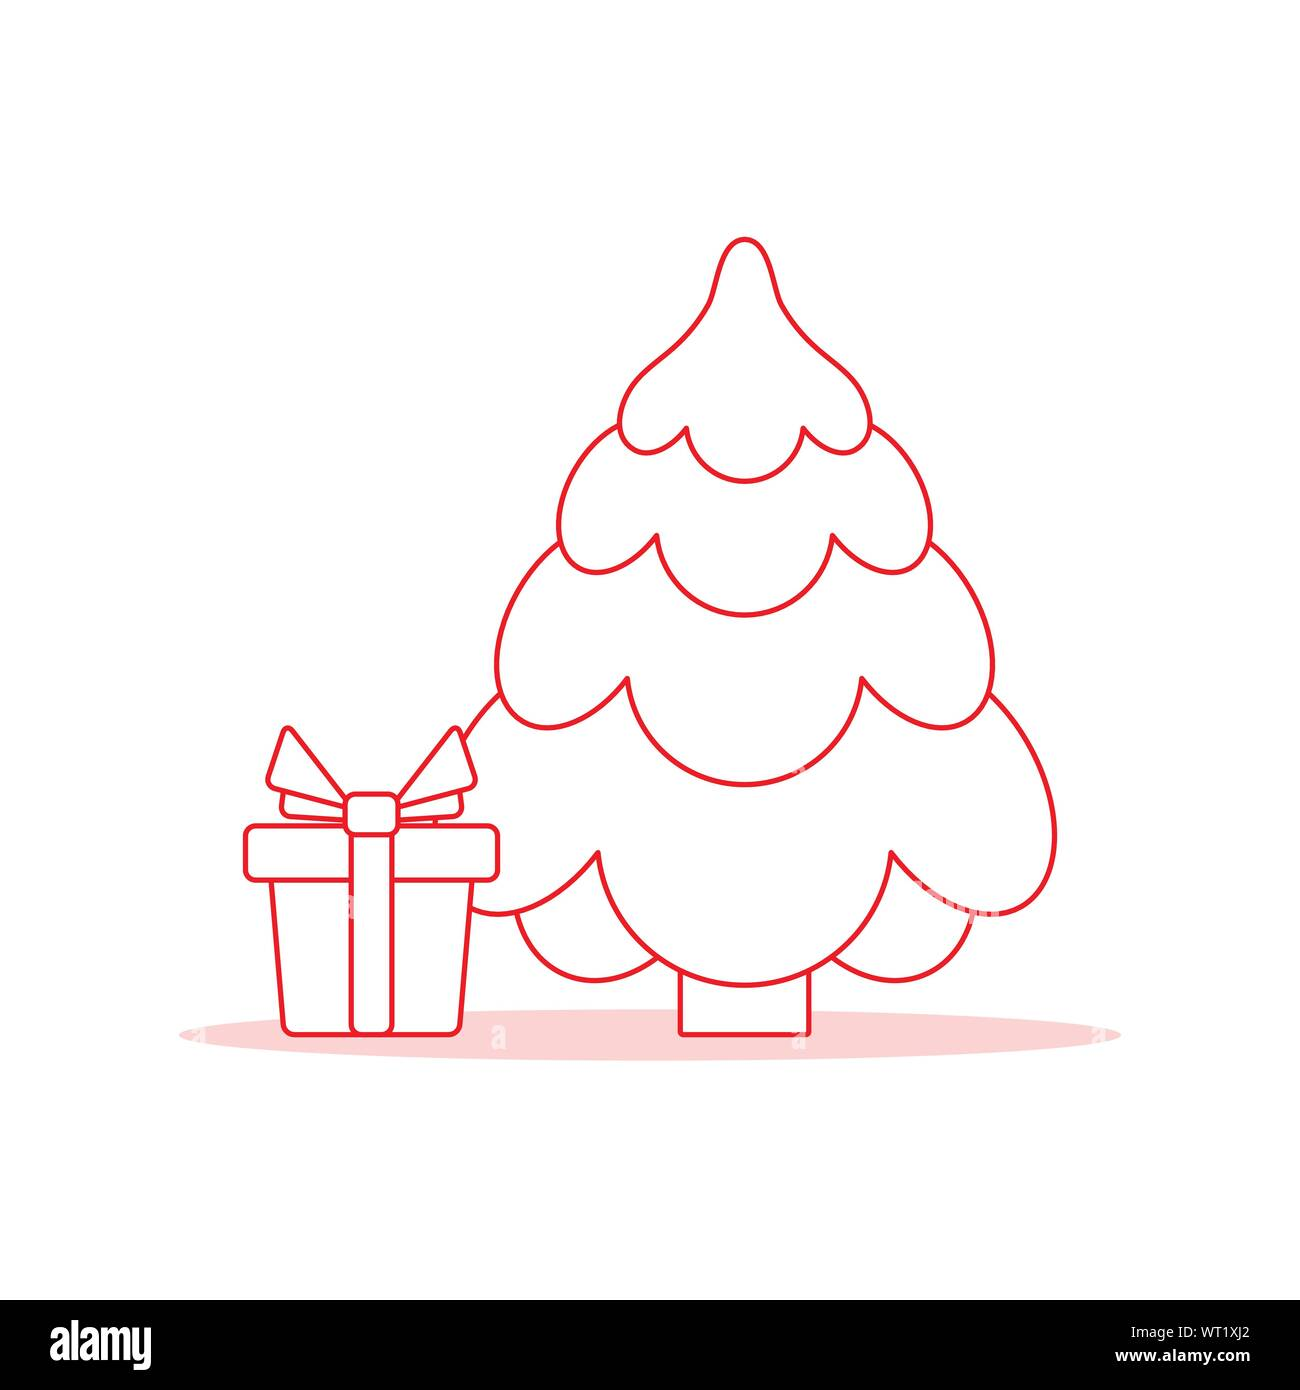 happy new year 2020 merry christmas vector illustration with christmas tree gift design for web page presentation print stock vector image art alamy https www alamy com happy new year 2020 merry christmas vector illustration with christmas tree gift design for web page presentation print image272950106 html